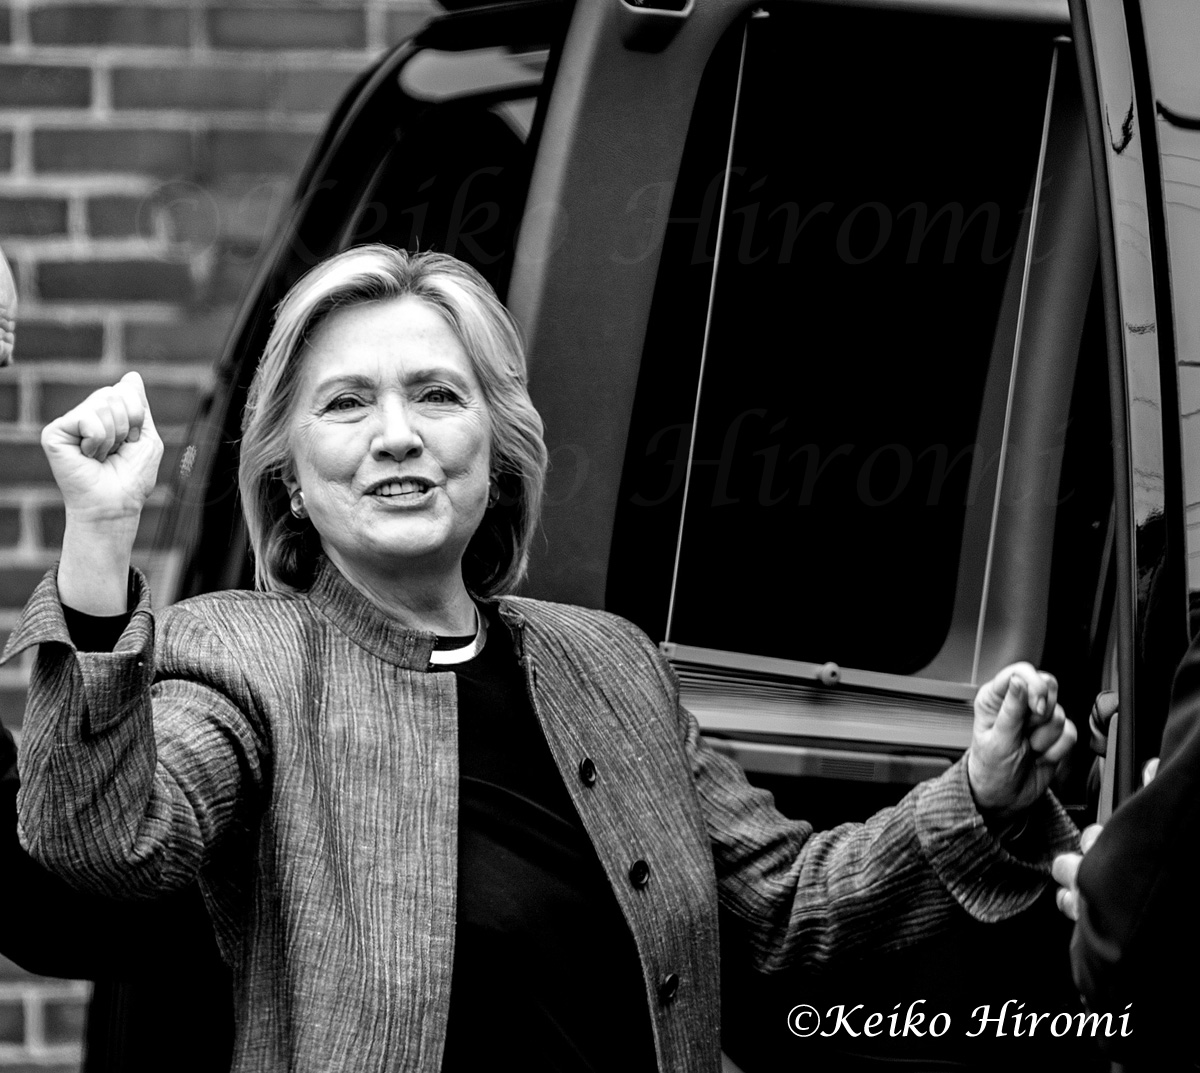 Hillary Clinton, Democratic Presidential candidate, leaving New Hampshire Technical Institute,  Concord's Community College in Concord, NH onApril 21, 2015.